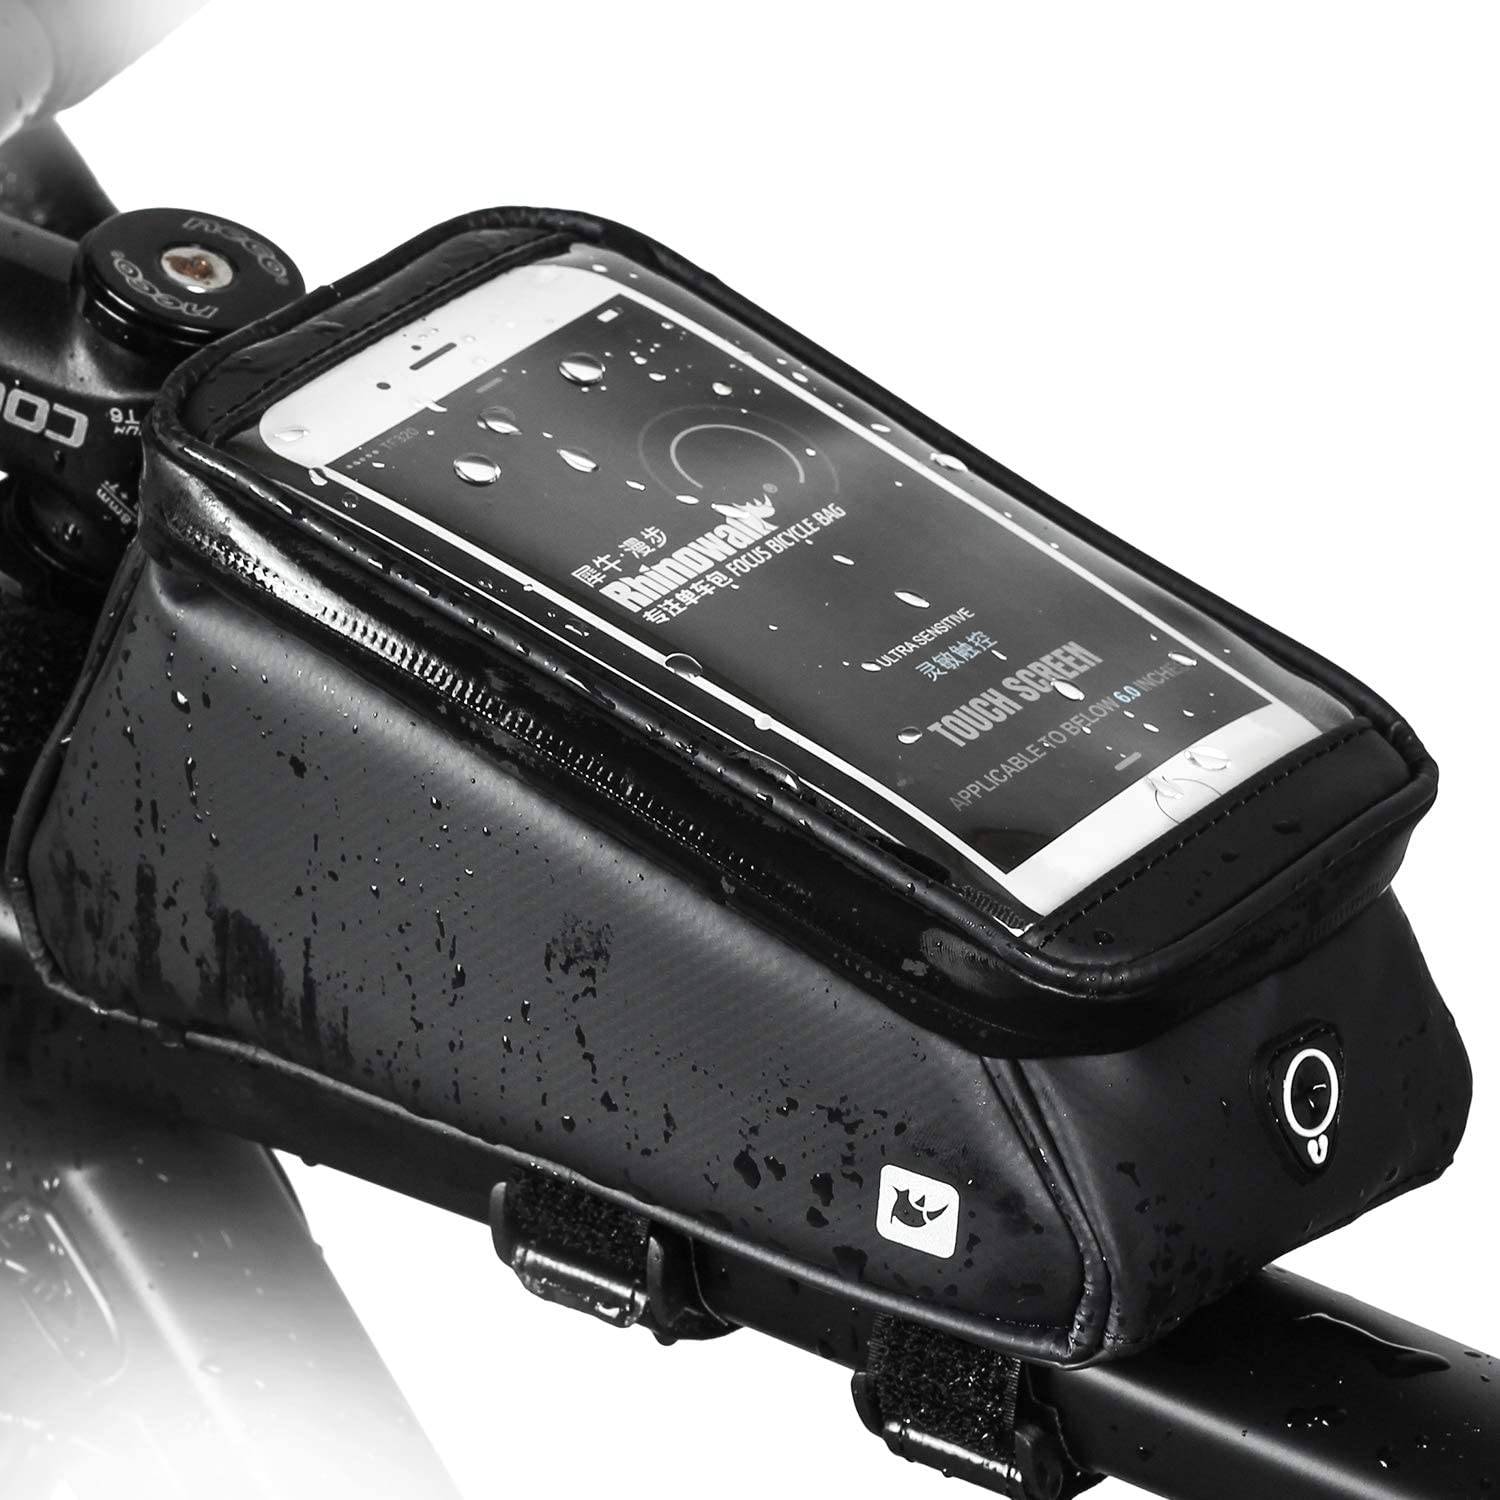 Rhinowalk Bike Phone Bag Bicycle Front Frame Bag Top Tube Bag Waterproof Handlebar Bag with 6 inch Touch Screen